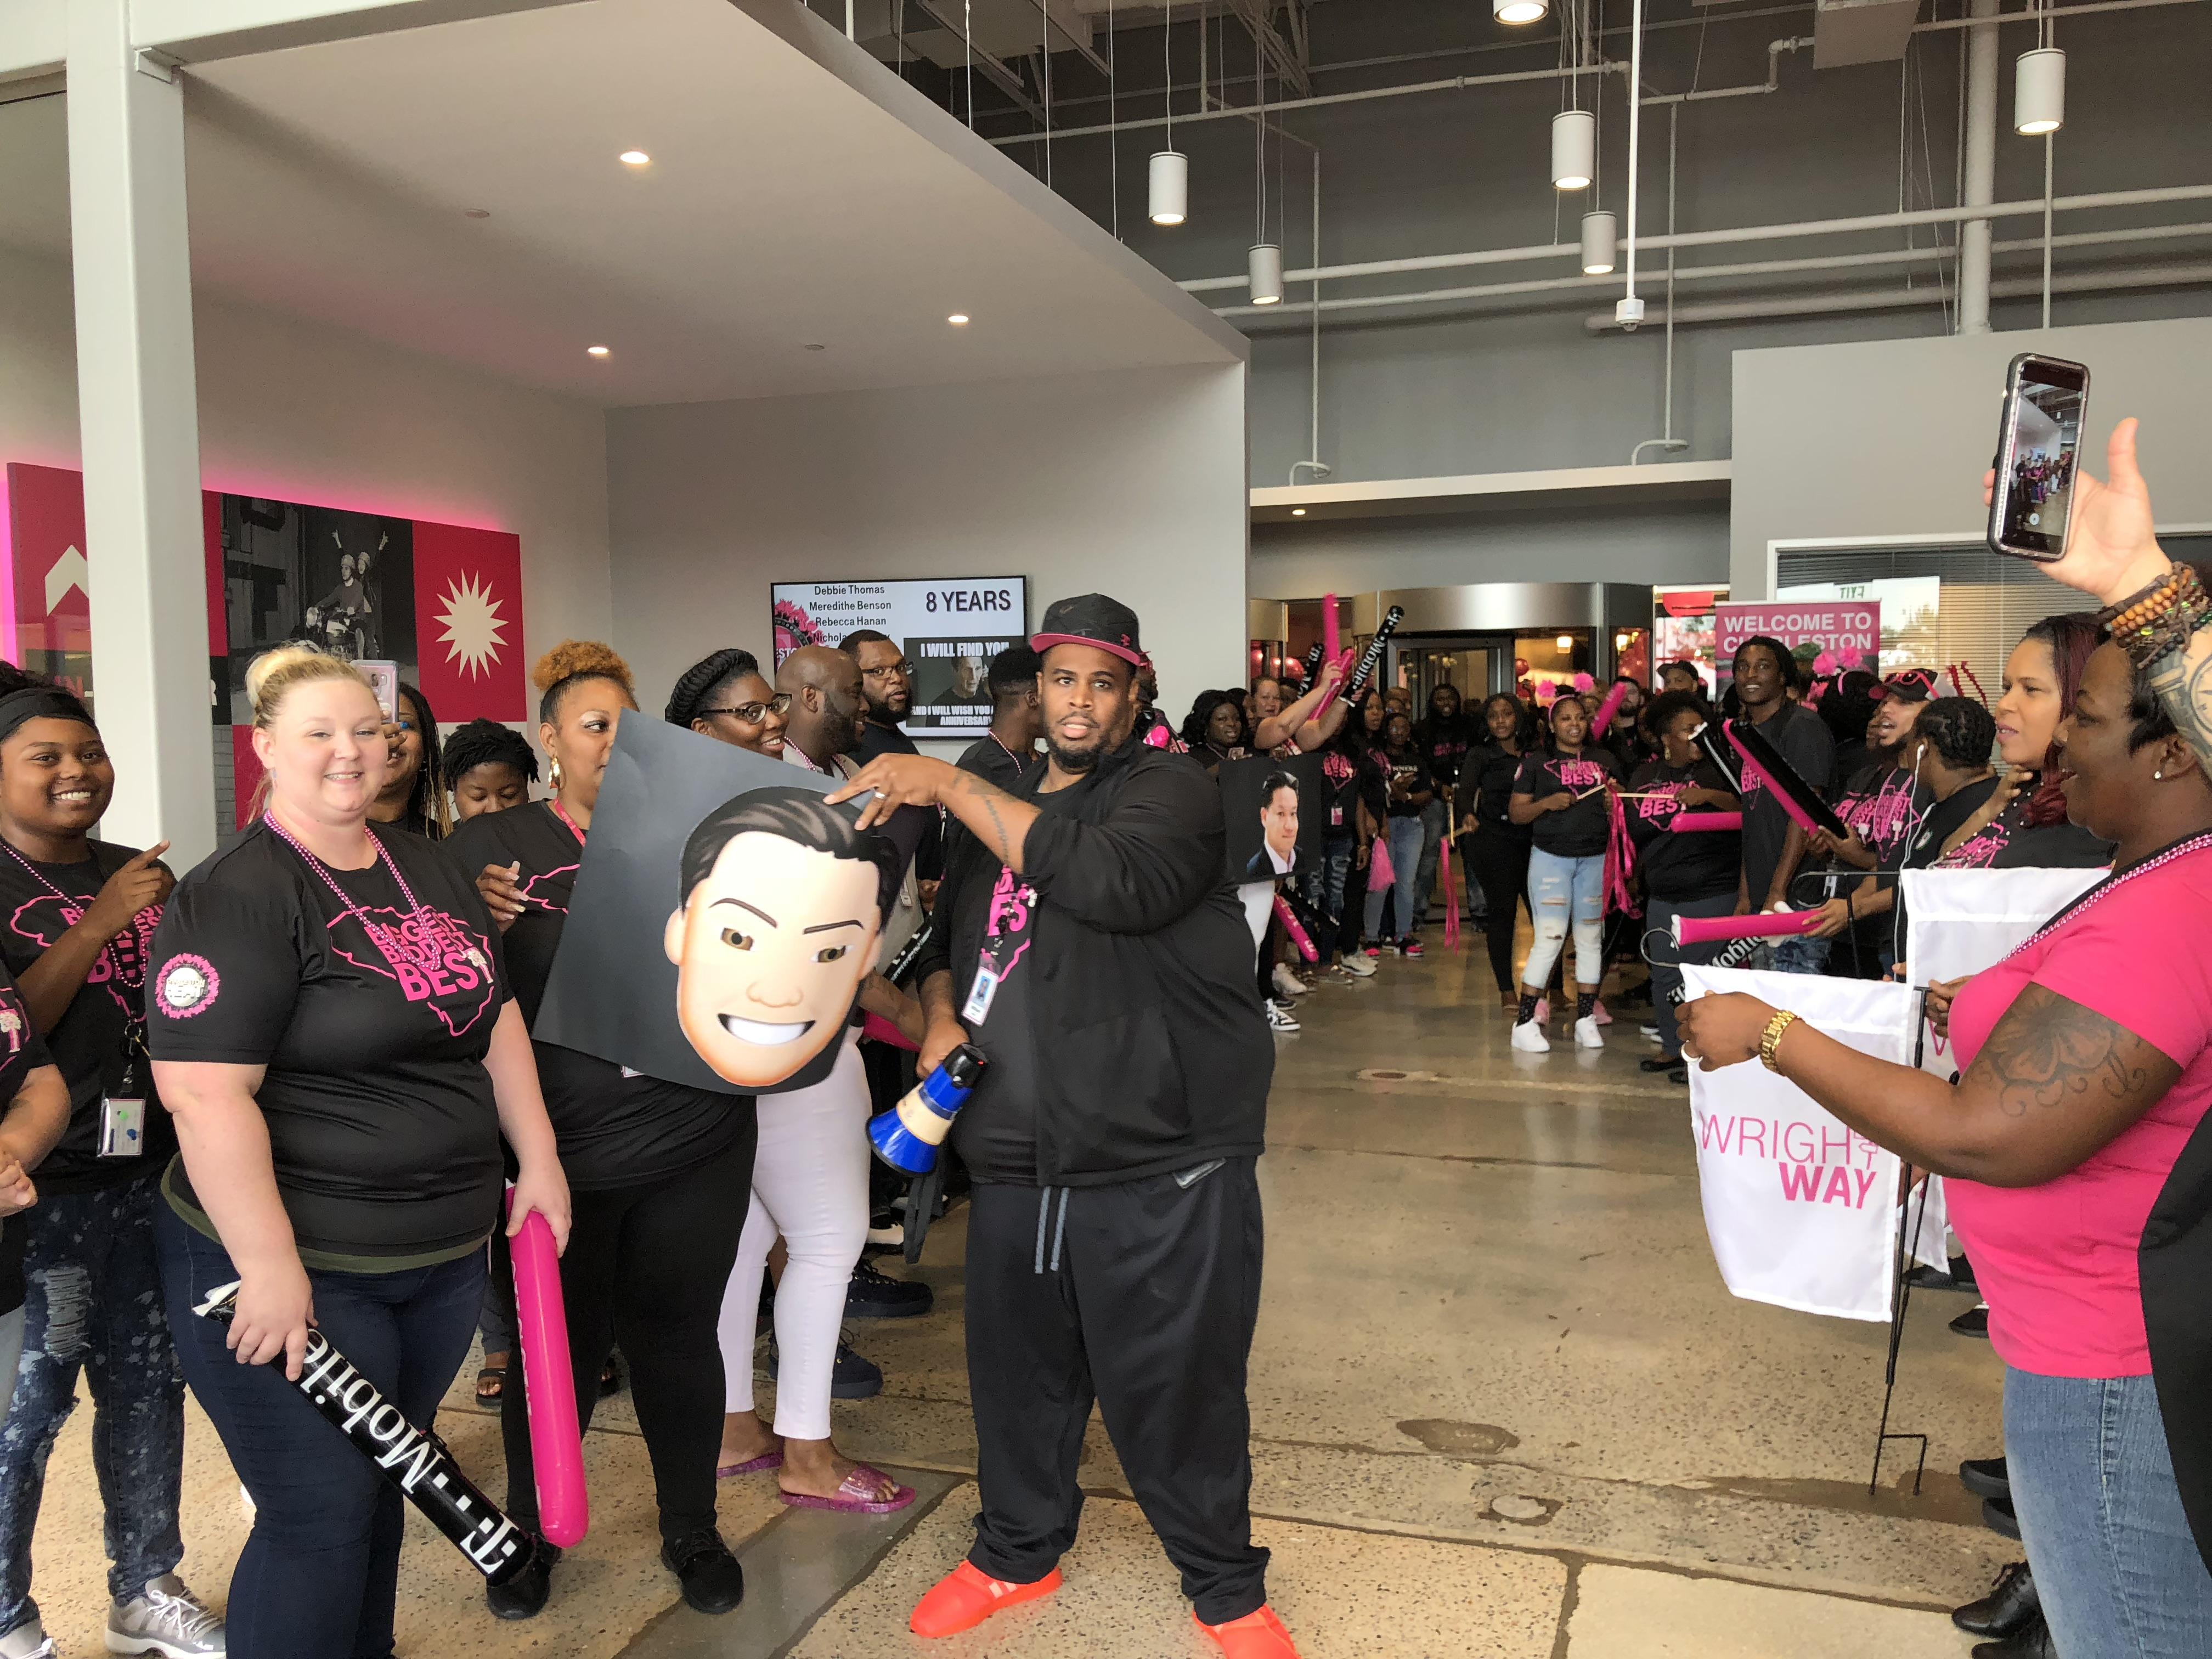 <p>This is how T-Mobile employees greet visitors to their customer care centers.&nbsp;</p>